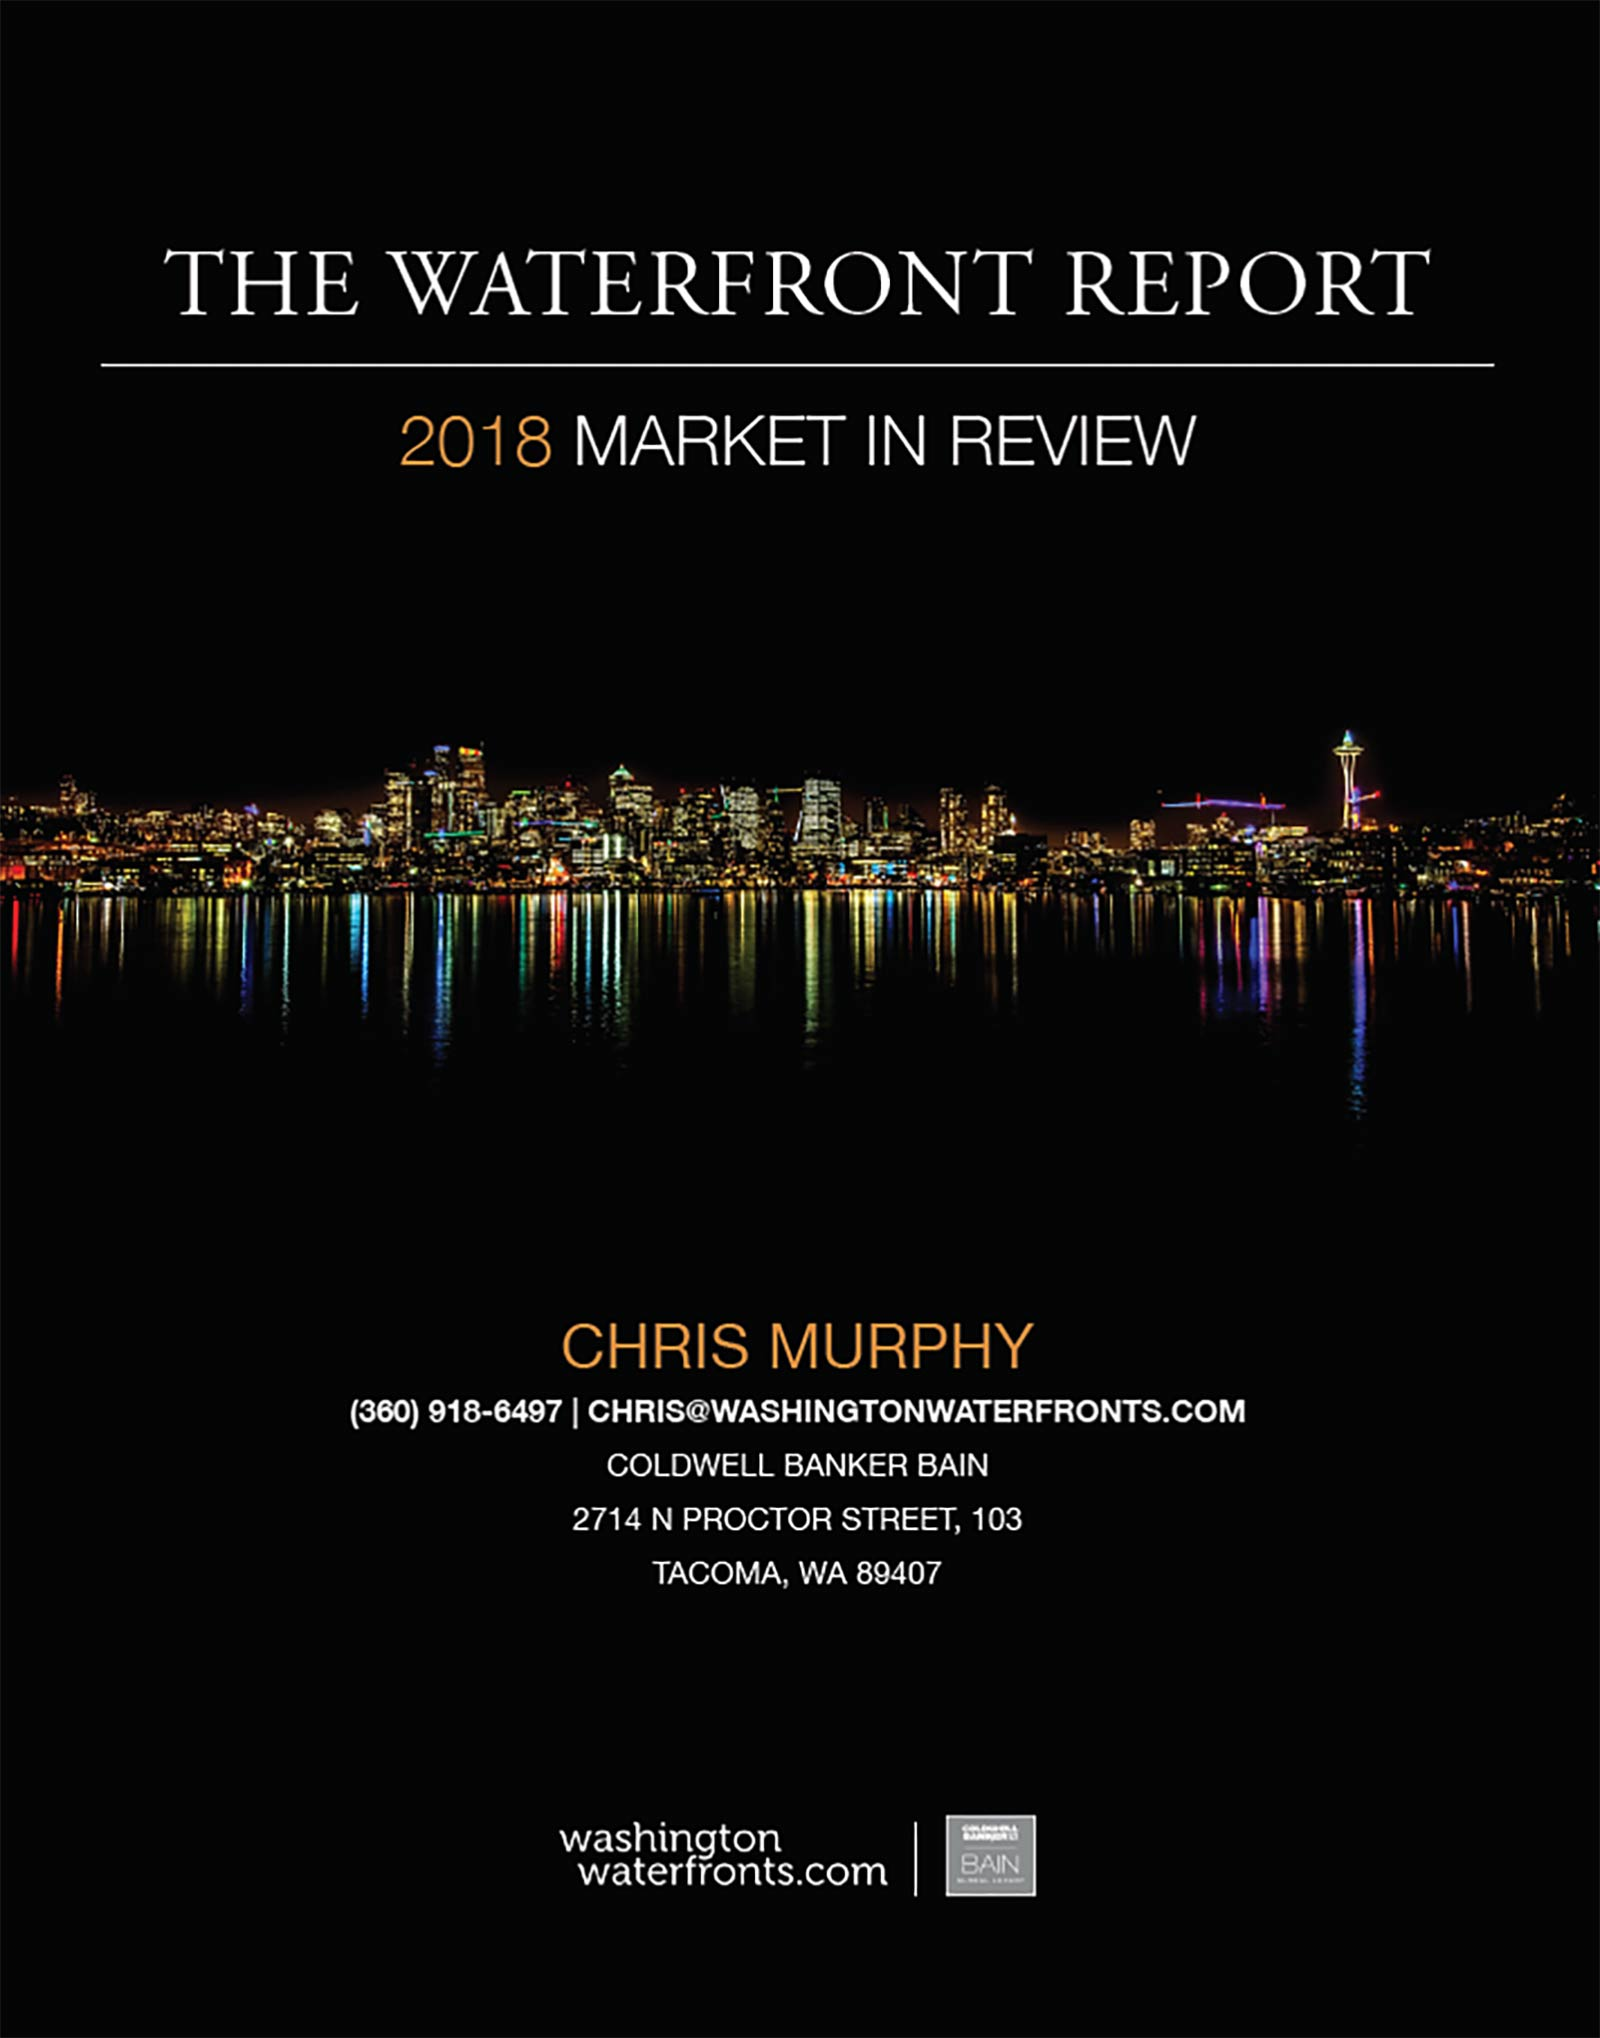 2018 Waterfront Report Conclusion